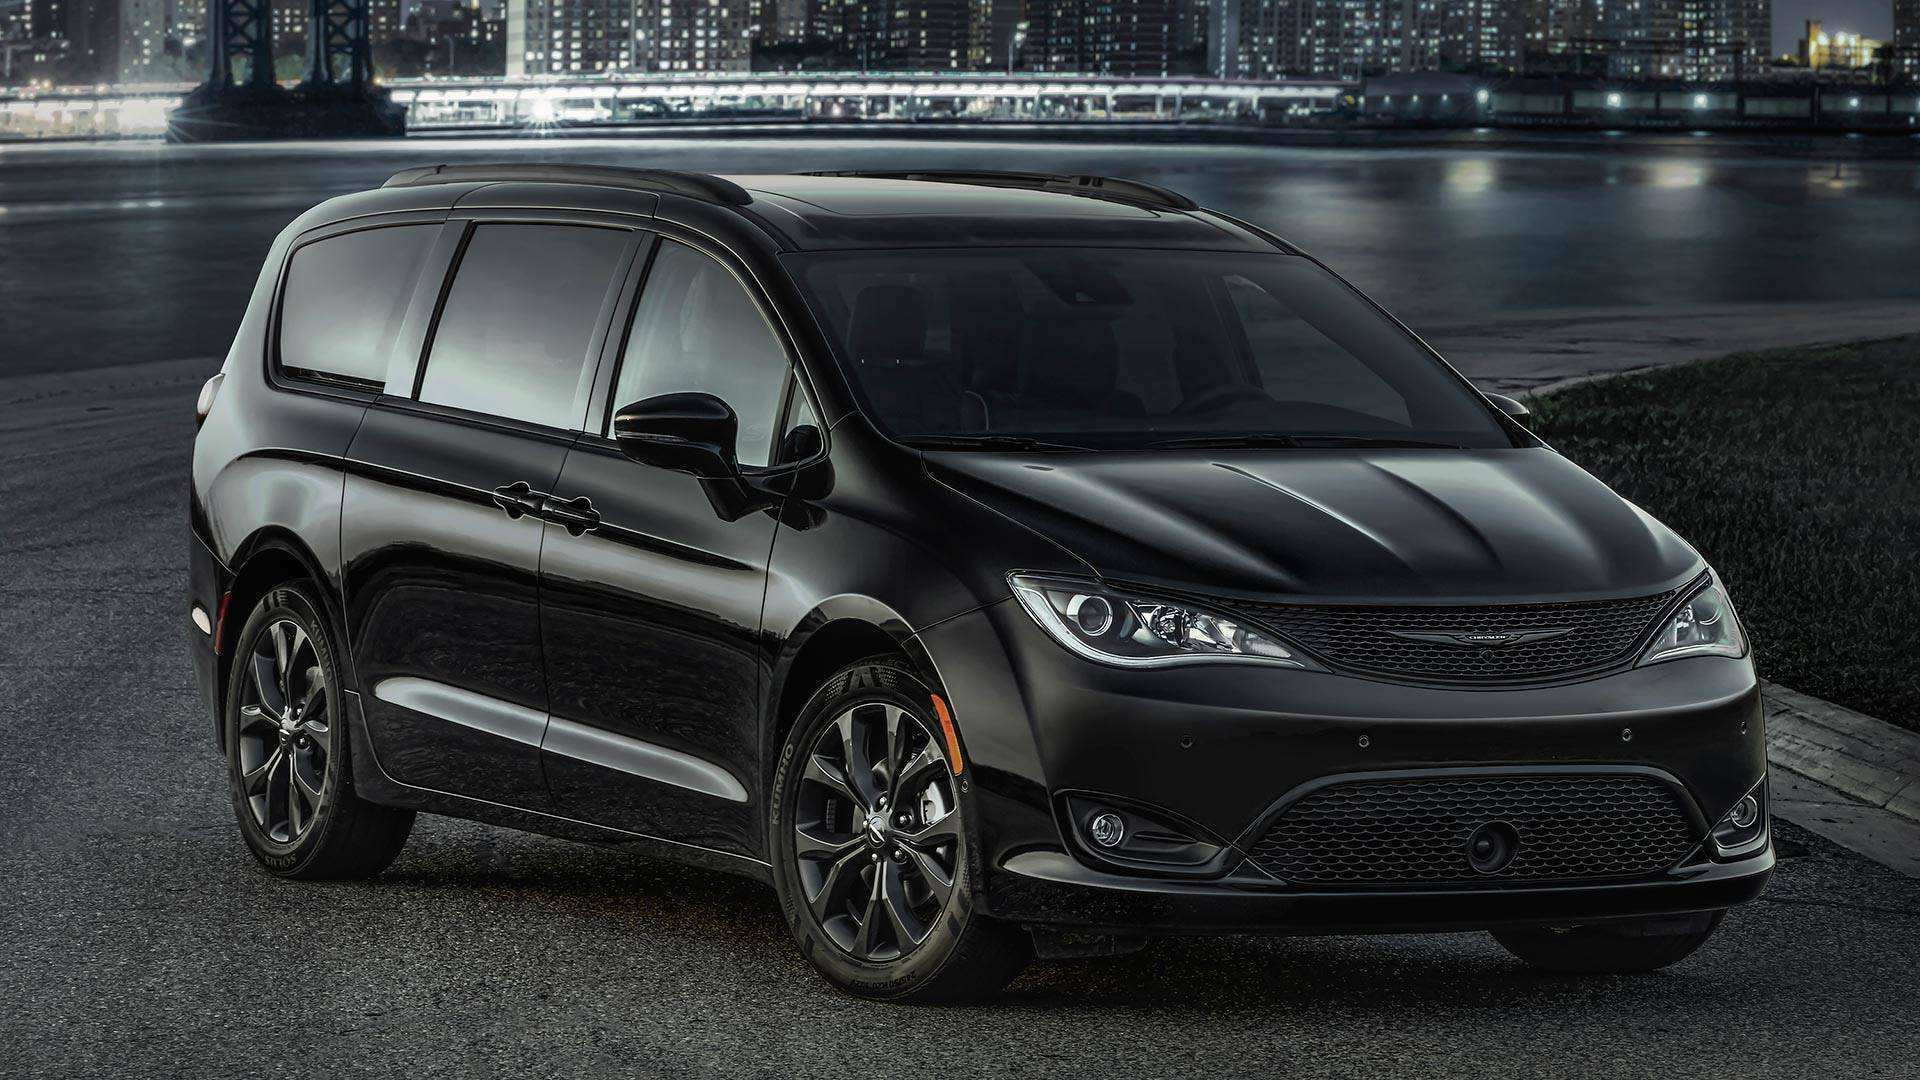 58 A 2020 Chrysler Town Rumors